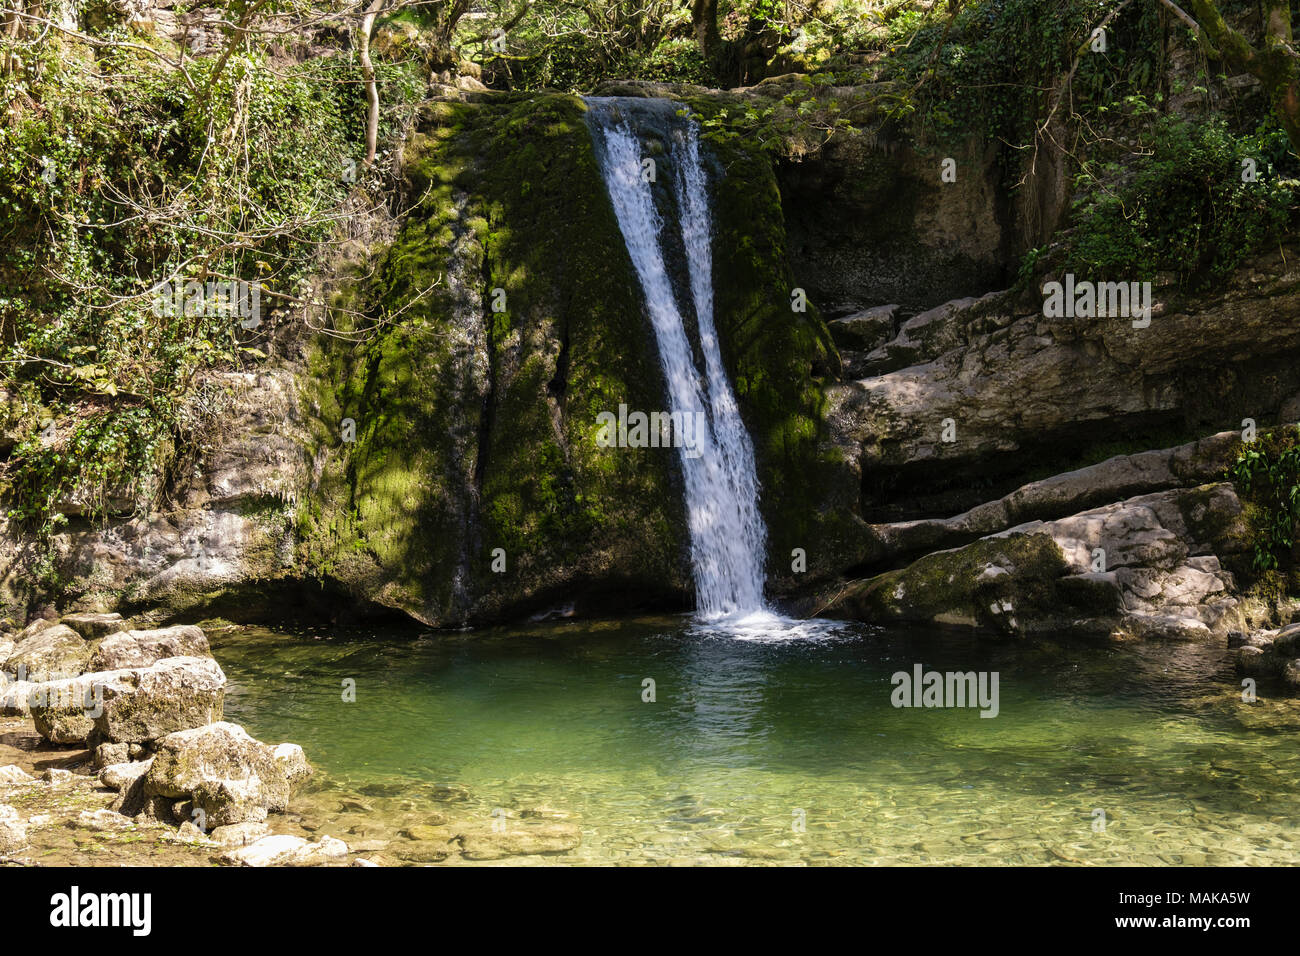 Janet's Foss waterfall falls over a limestone ledge into a pool on Gordale Beck in summer. Malham Yorkshire Dales National Park England UKStock Photo